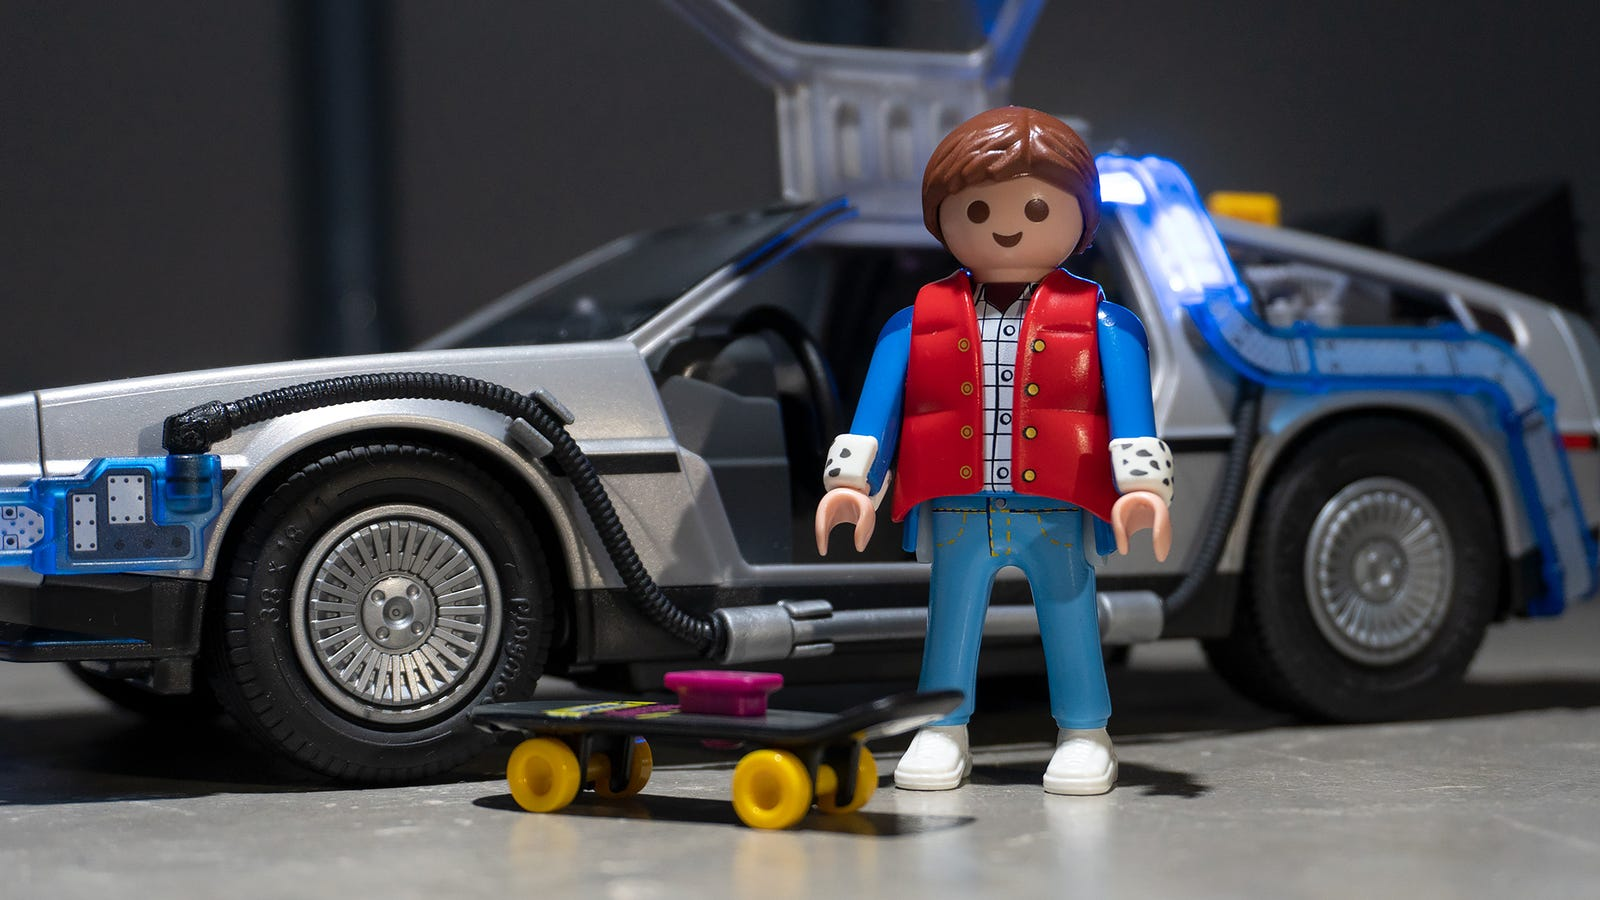 Playmobil's Marty McFly sports his 1985 costume from the film and includes his present-day skateboard. But we would have really liked to see his hoverboard from 2015 included as well.